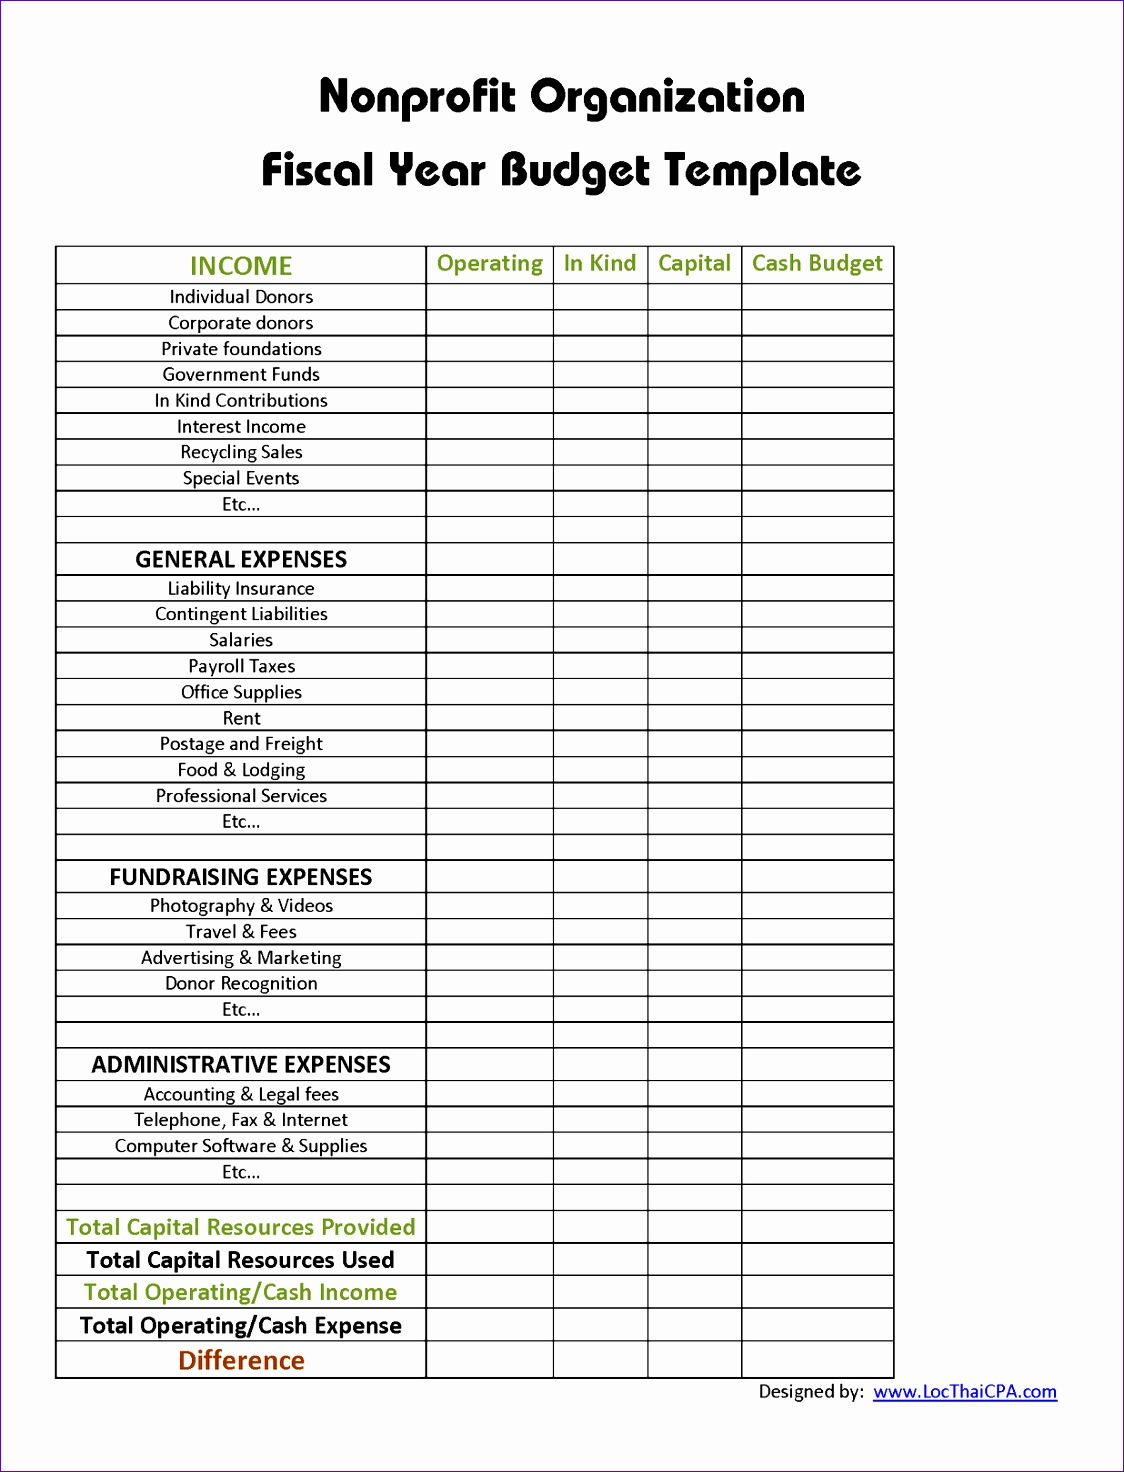 Monthly Budget Template Excel 2010 Ijddj Inspirational Fiscal Year Bud Template